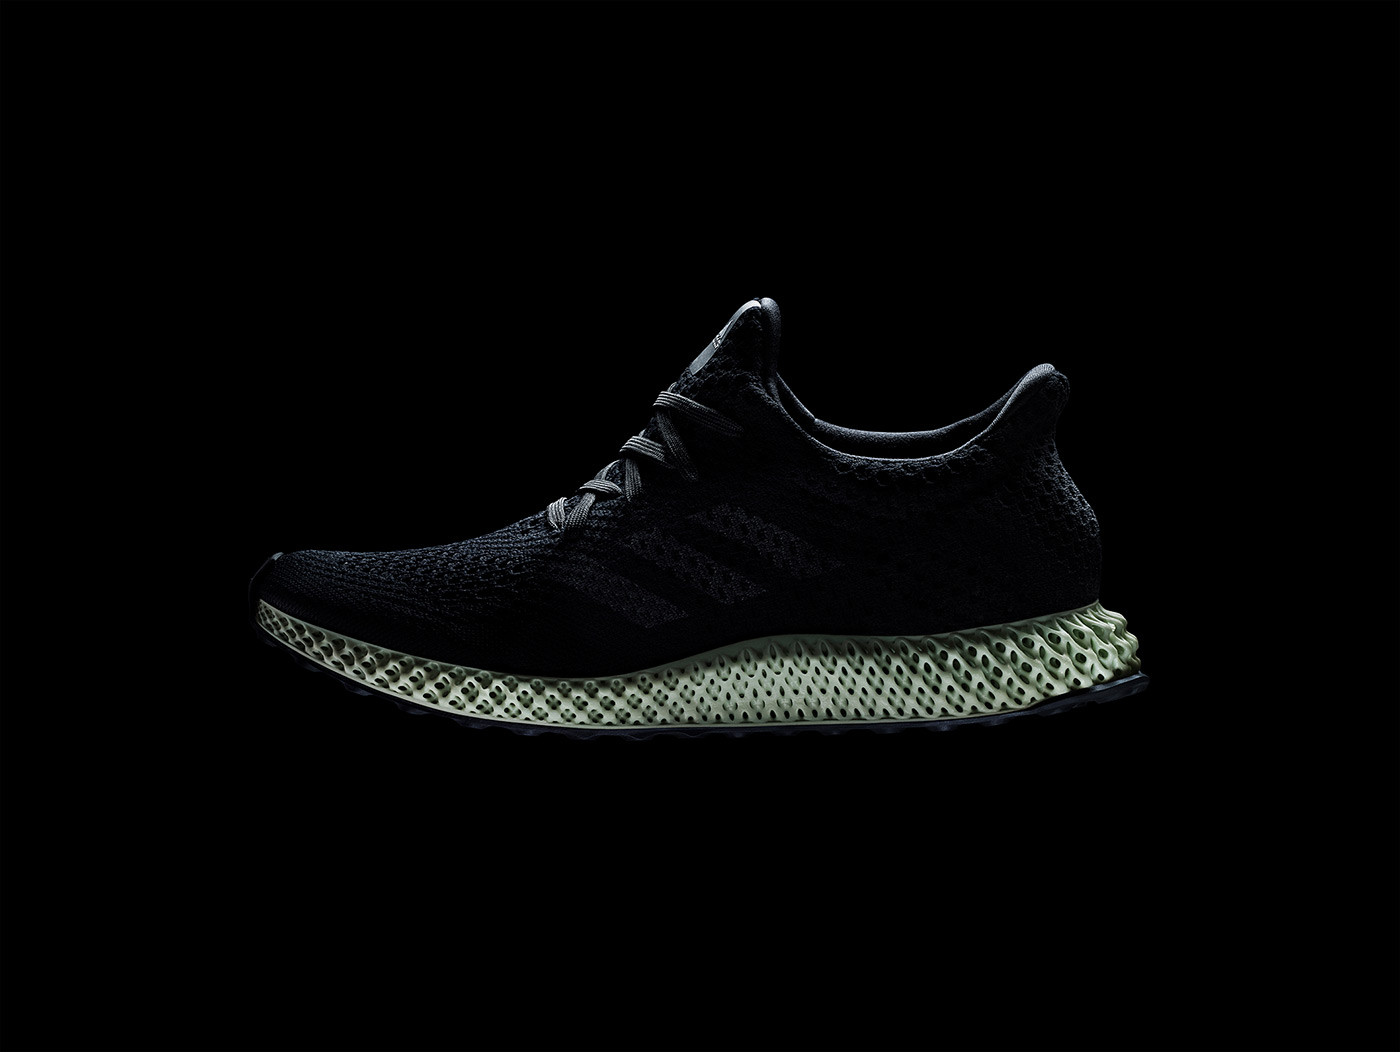 adidas Futurecraft 4D 3